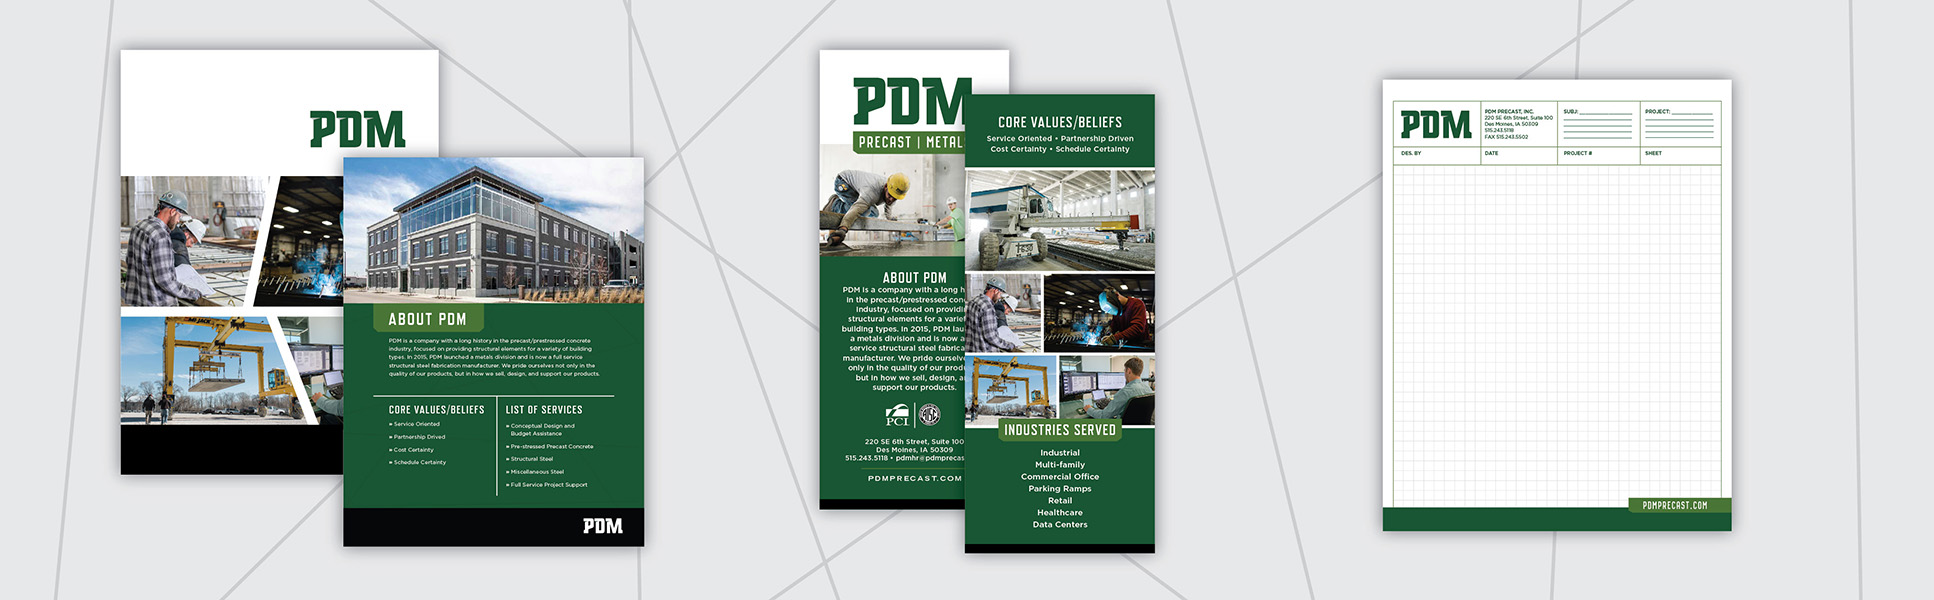 PDM sales sheets, rack cards and graph paper pad designed by Project7 Design